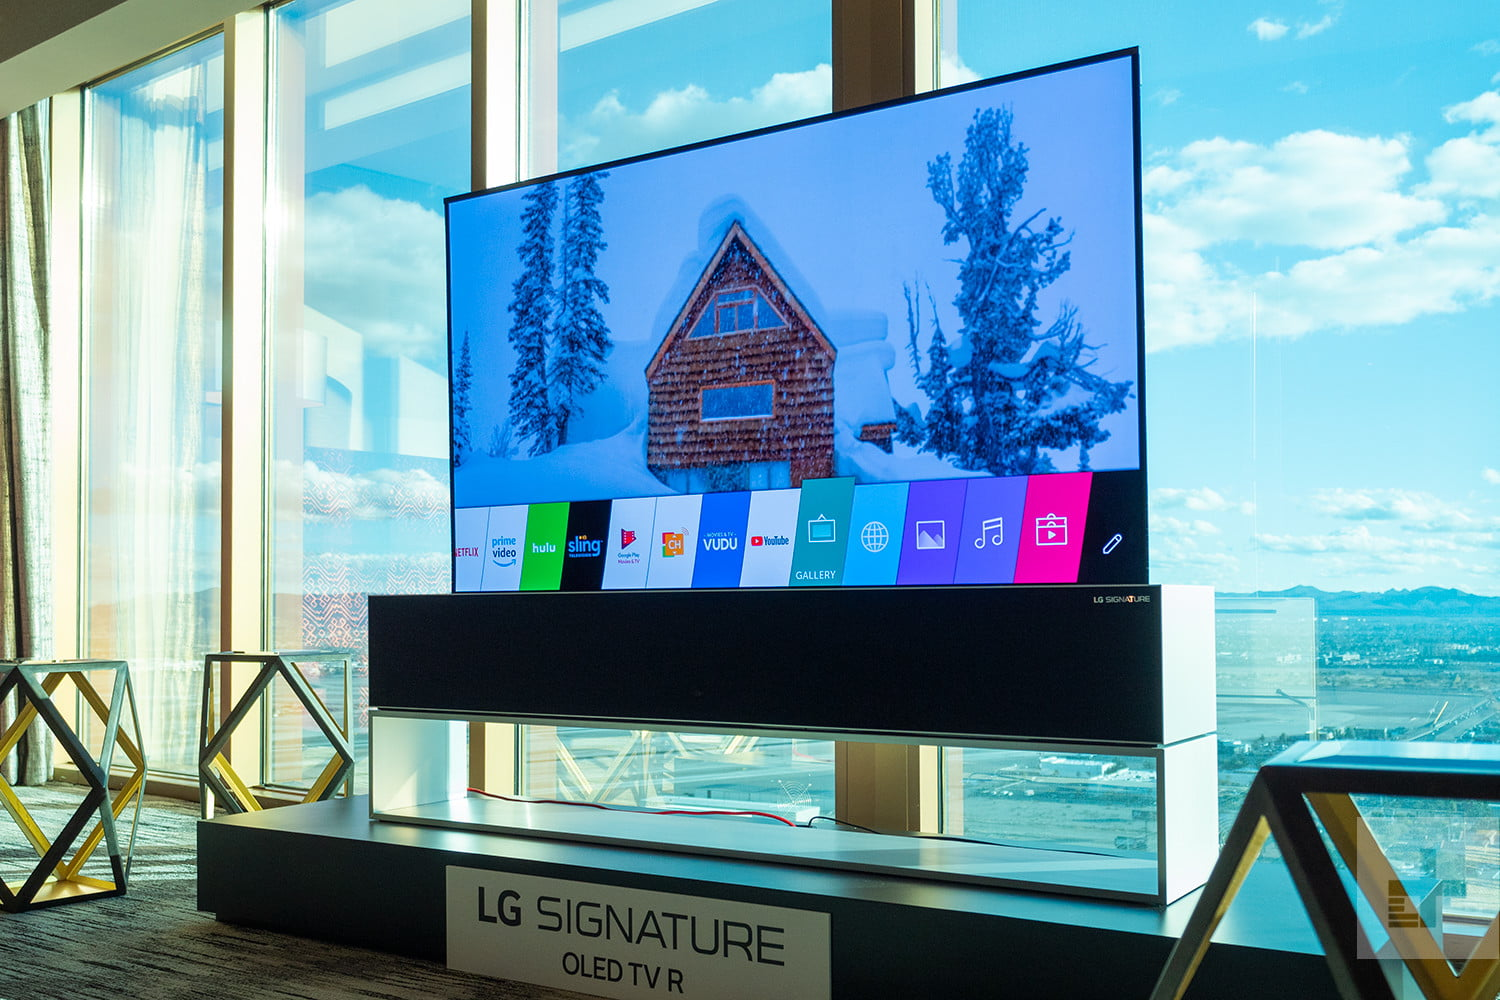 LG to announce an OLED 4K TV that rolls down from the ceiling at CES 2020